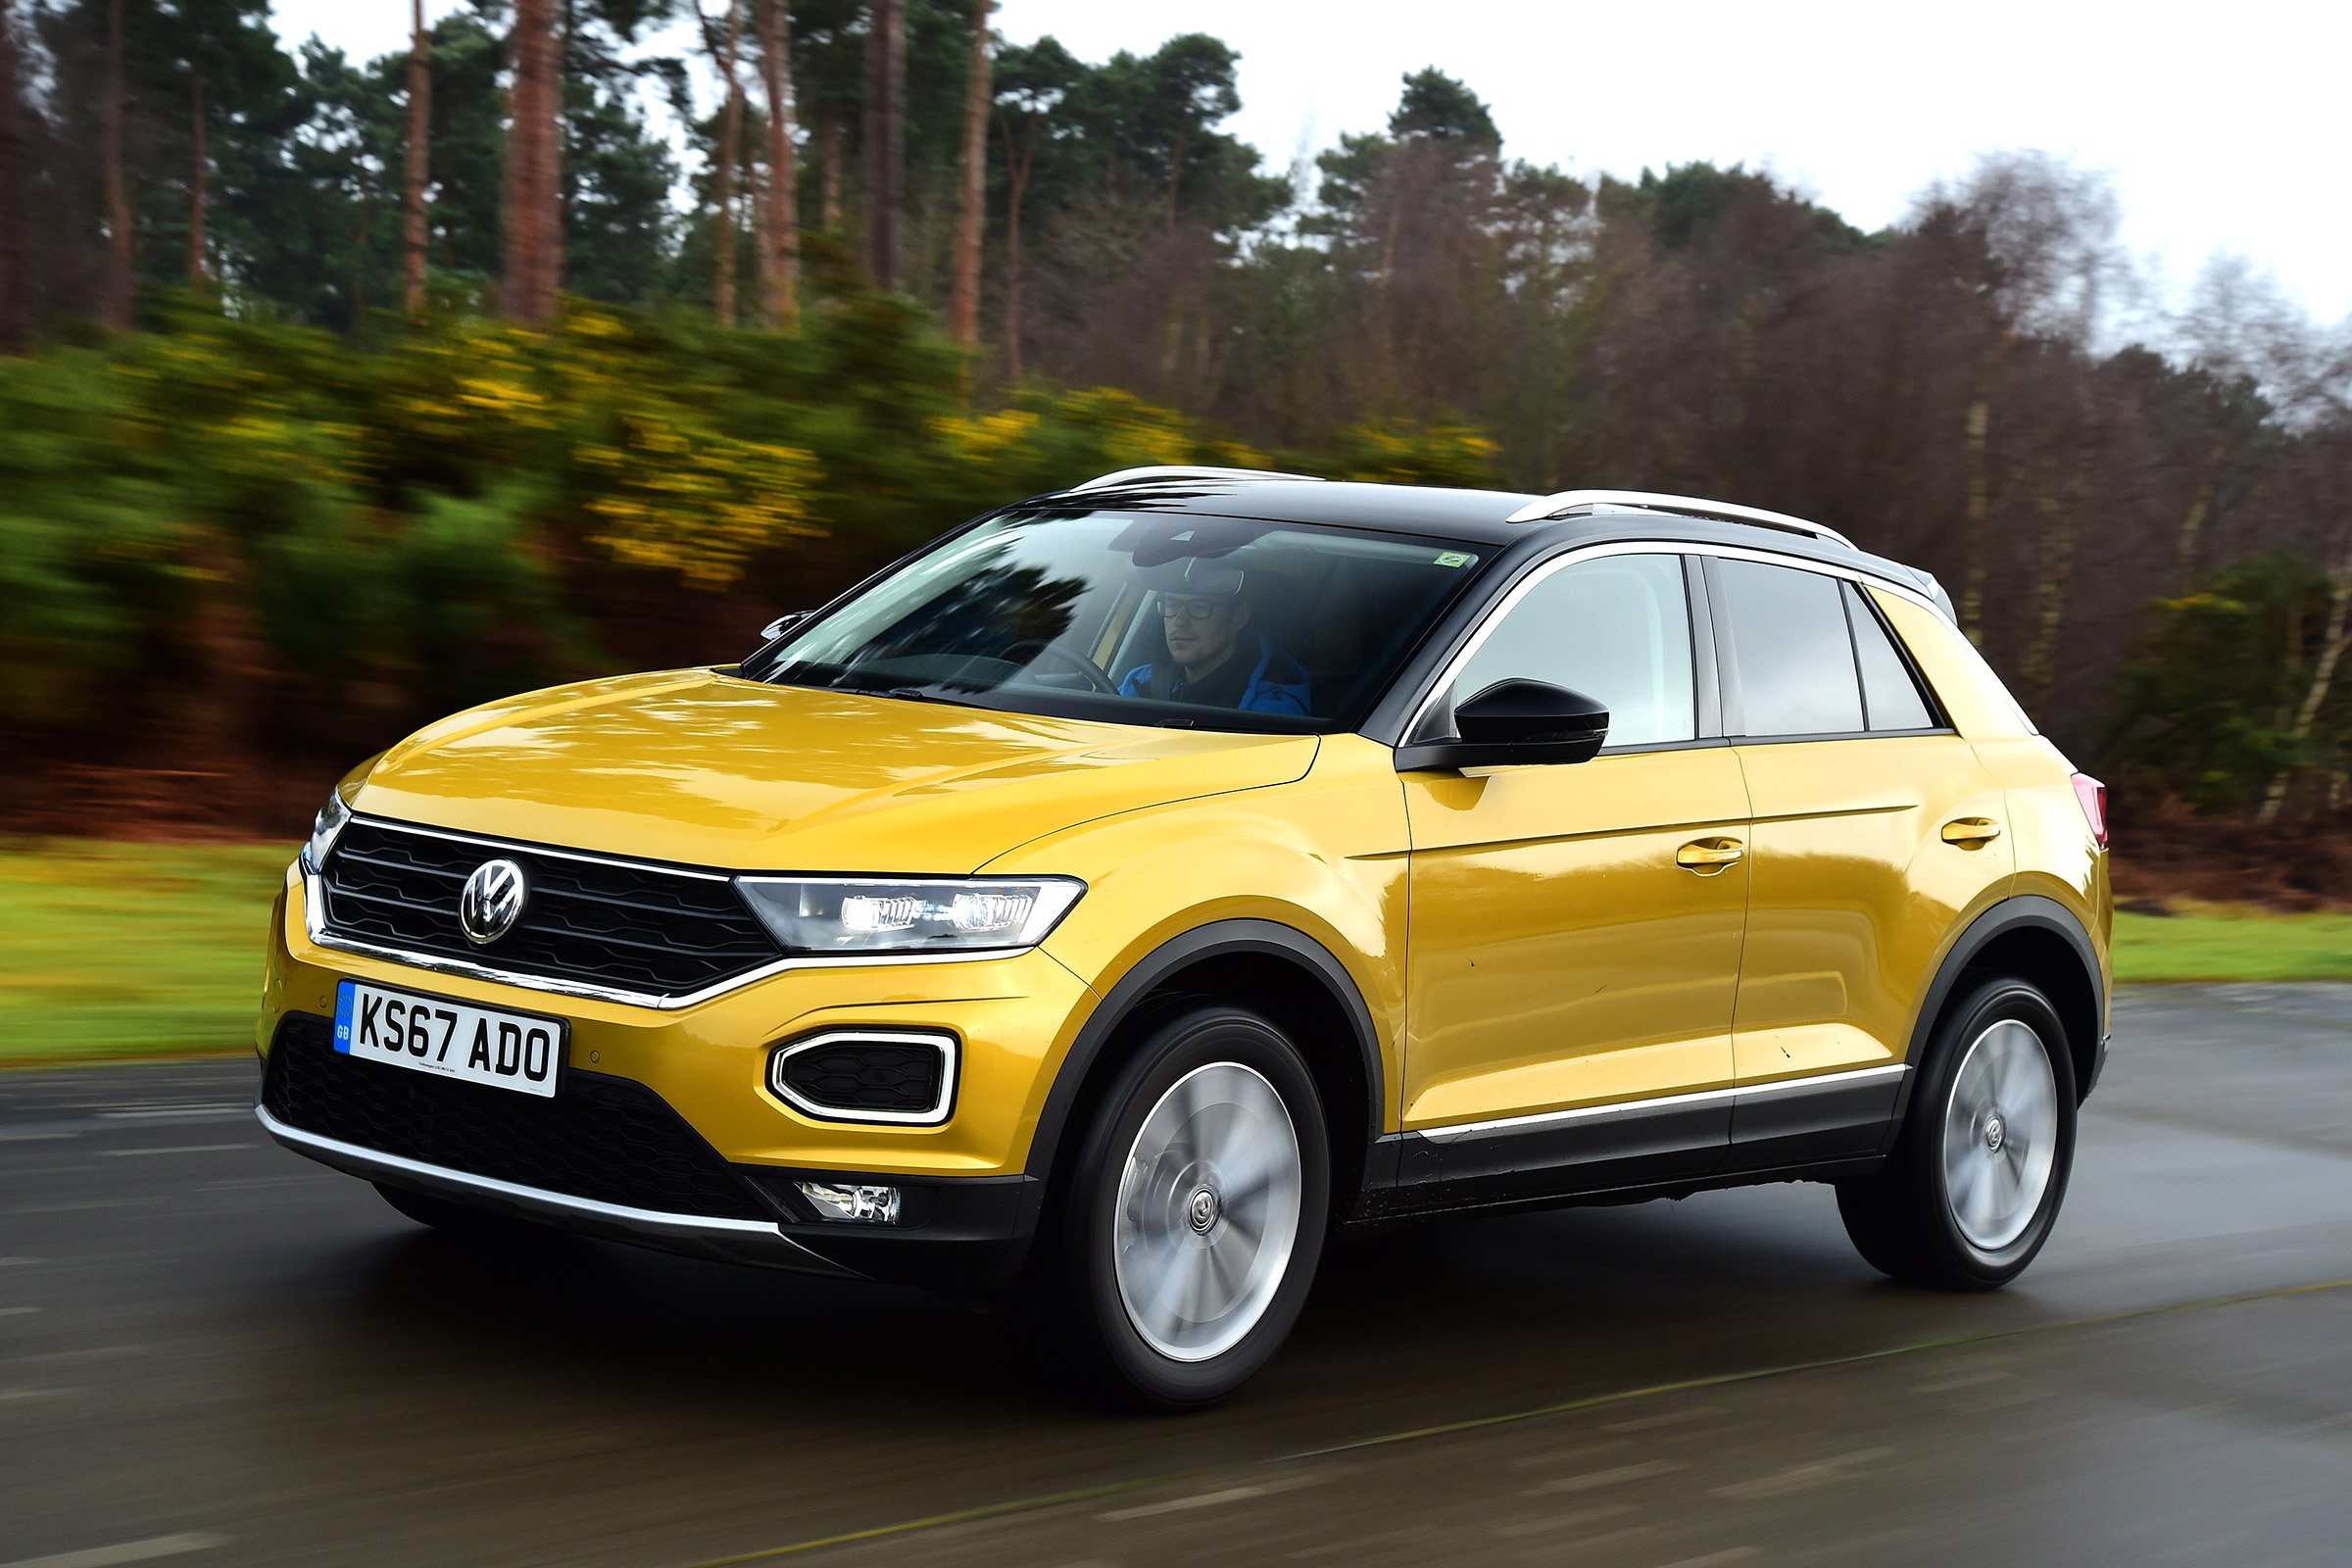 VW's T-Roc SUV – perfect for a small family who love exploring the countryside.